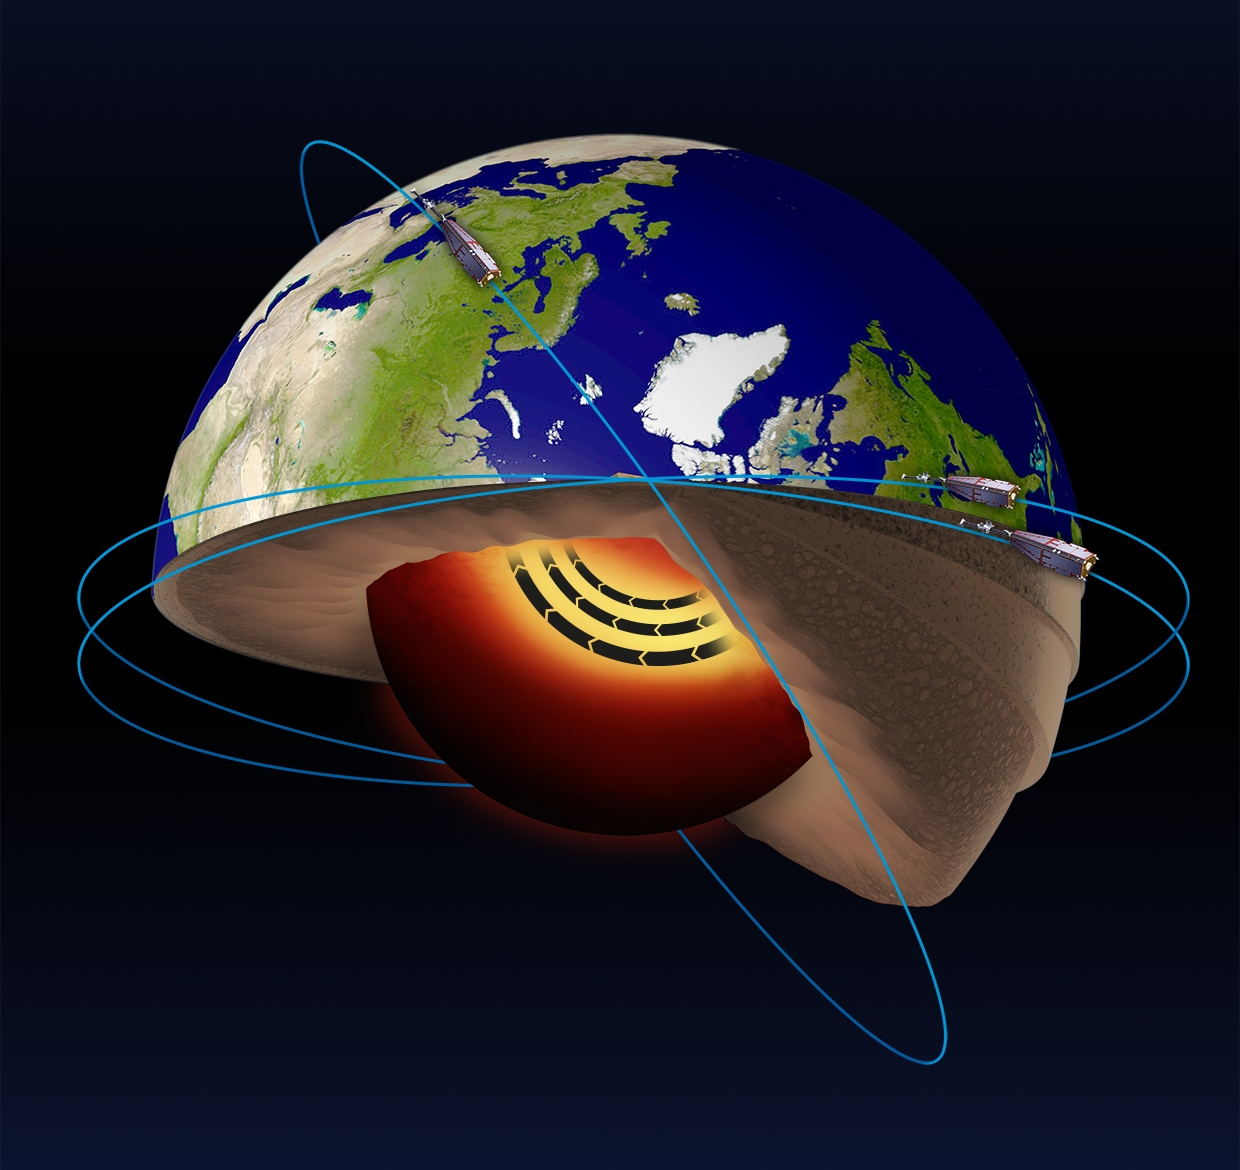 ESA's Swarm satellites have led the discovery of a jet stream in the liquid iron part of Earth's core 3000 km beneath the surface. In addition, Swarm satellite data show that this jet stream is speeding up. Launched in 2013, the Swarm trio is dedicated to identifying and measuring precisely the different magnetic signals that make up Earth's magnetic field. Image credit: ESA CC BY-SA 3.0 IGO